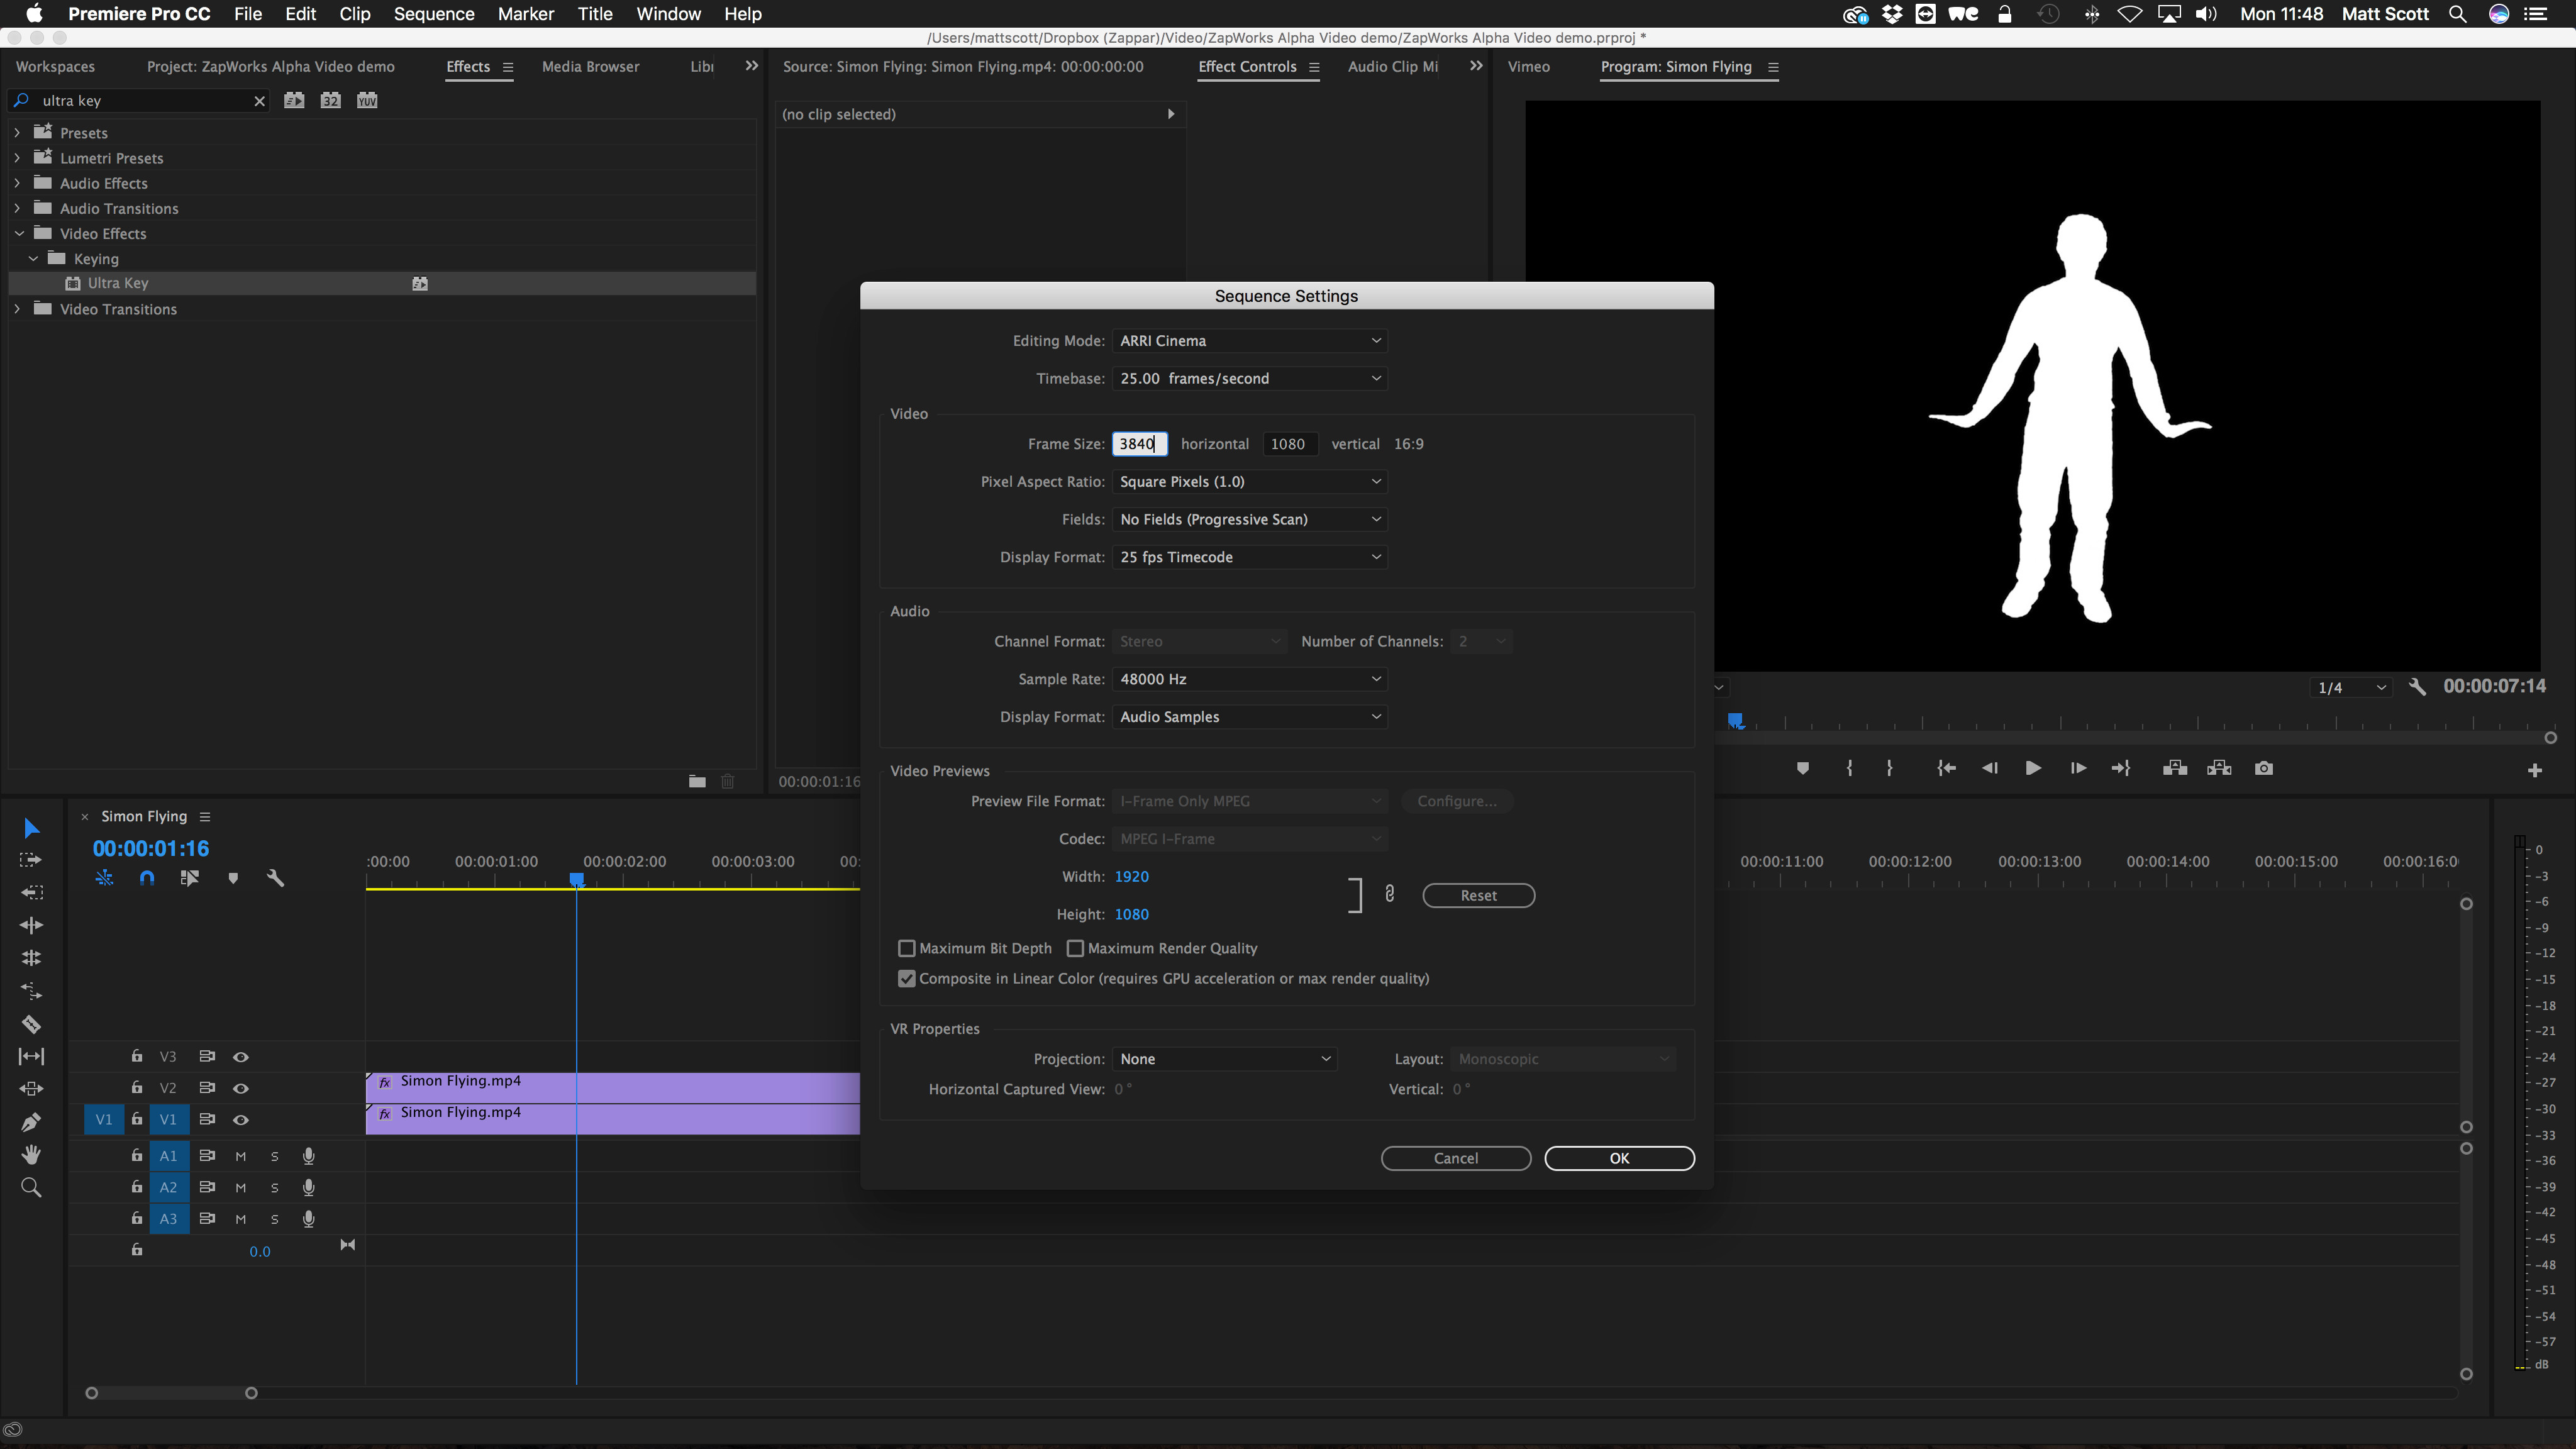 Alpha Video in Studio - Tutorials (Beta) - ZapWorks Forum